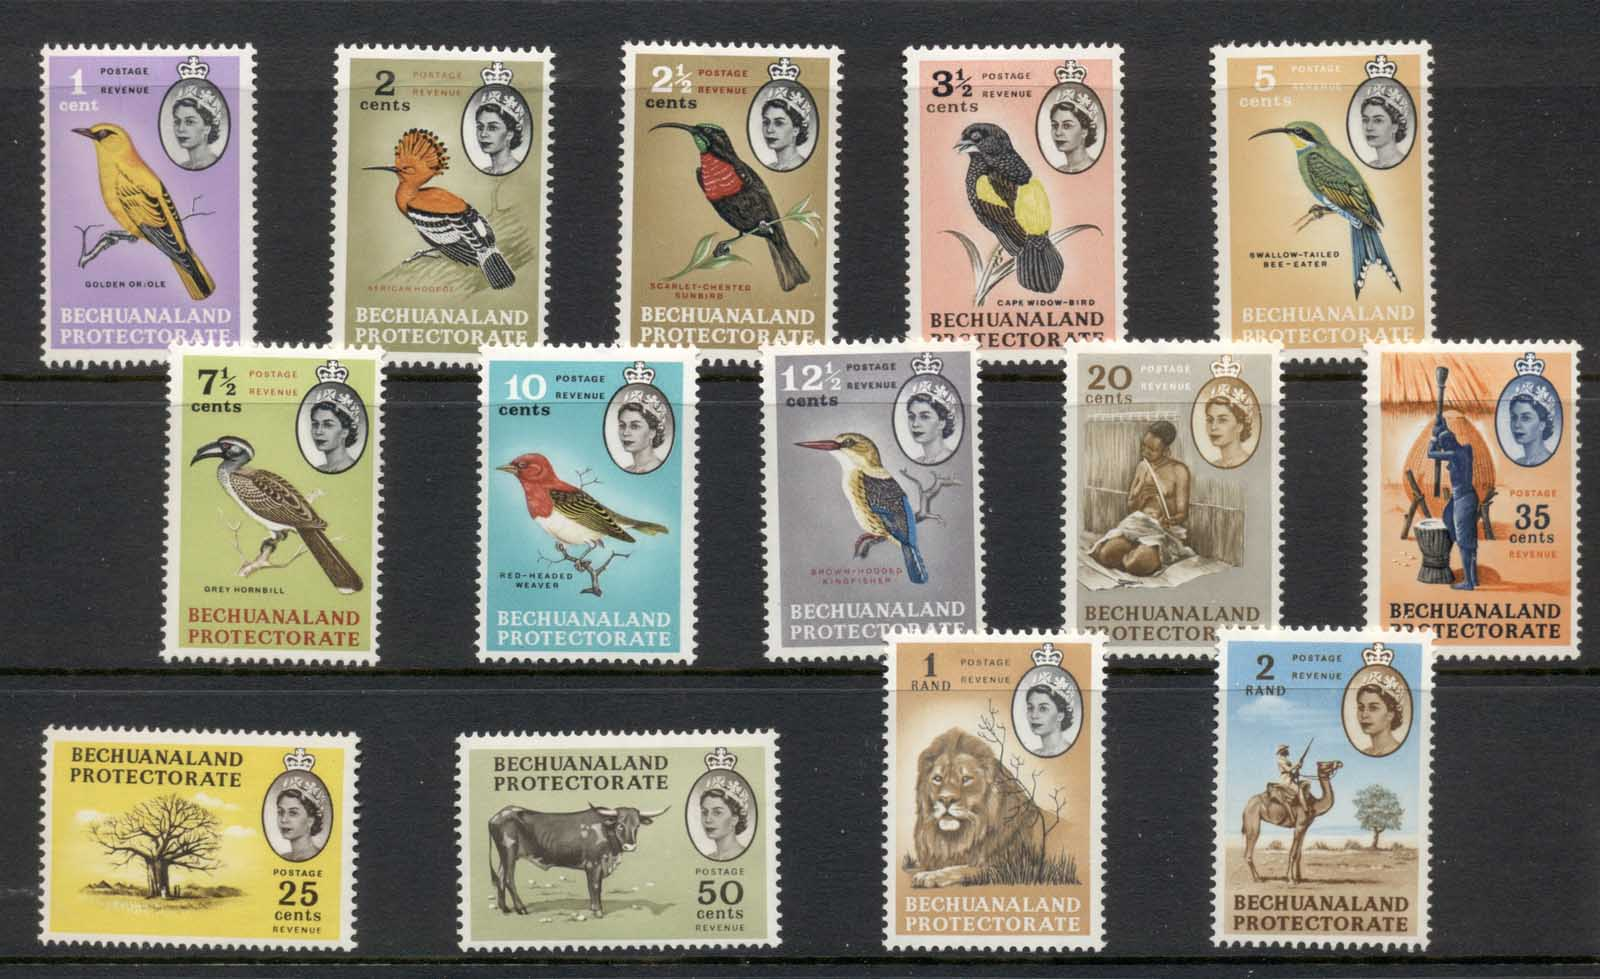 Bechuanaland Protectorate 1961 QEII Pictorials, Birds MLH